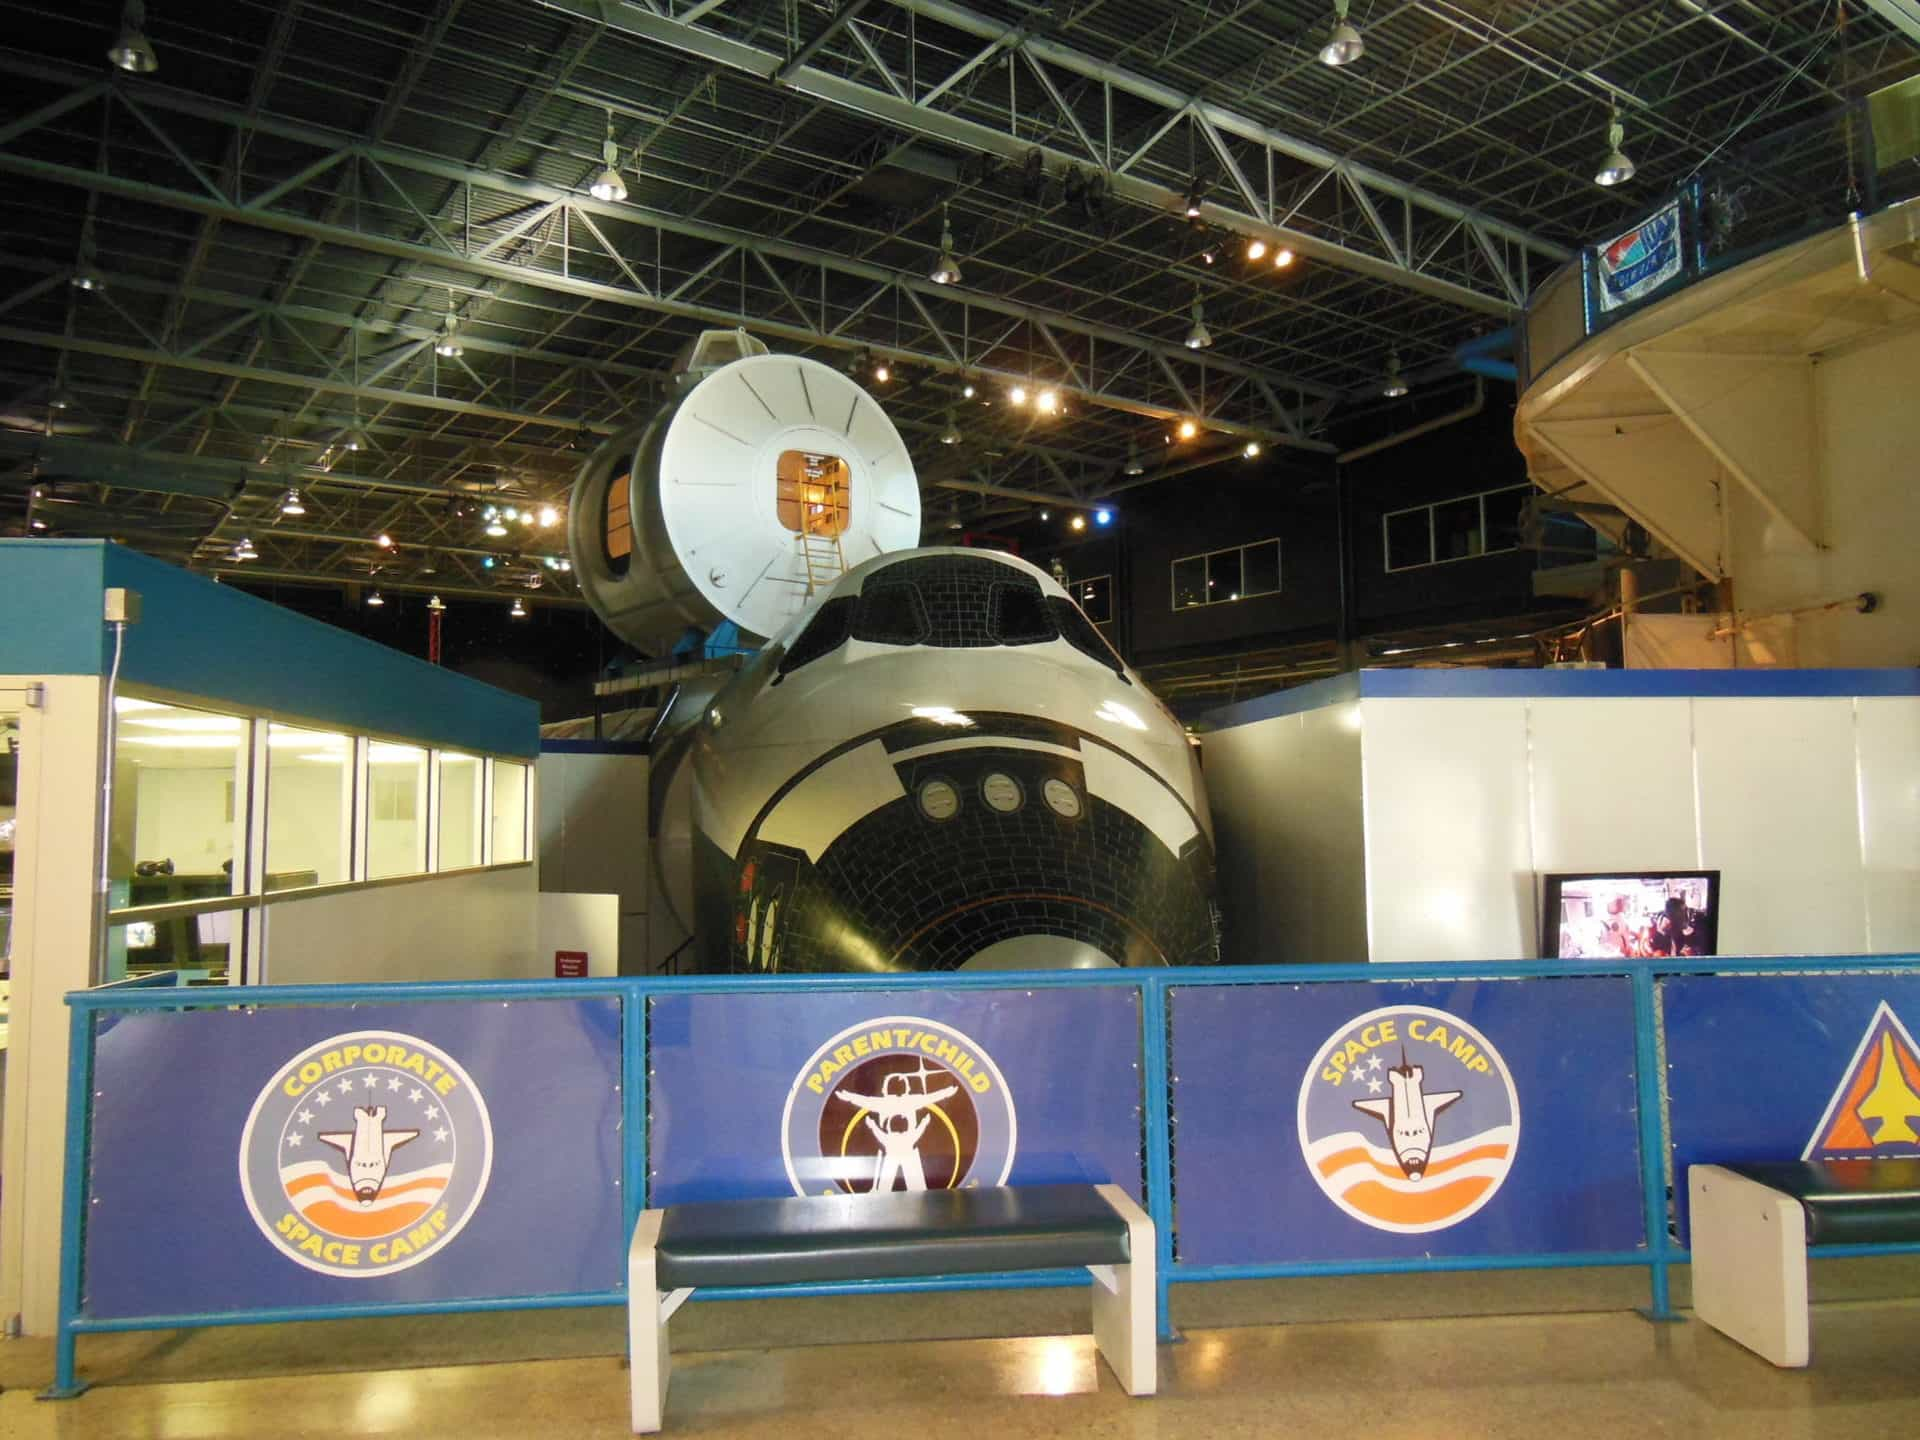 US Space and Rocket Center - Space Camp area - shuttle